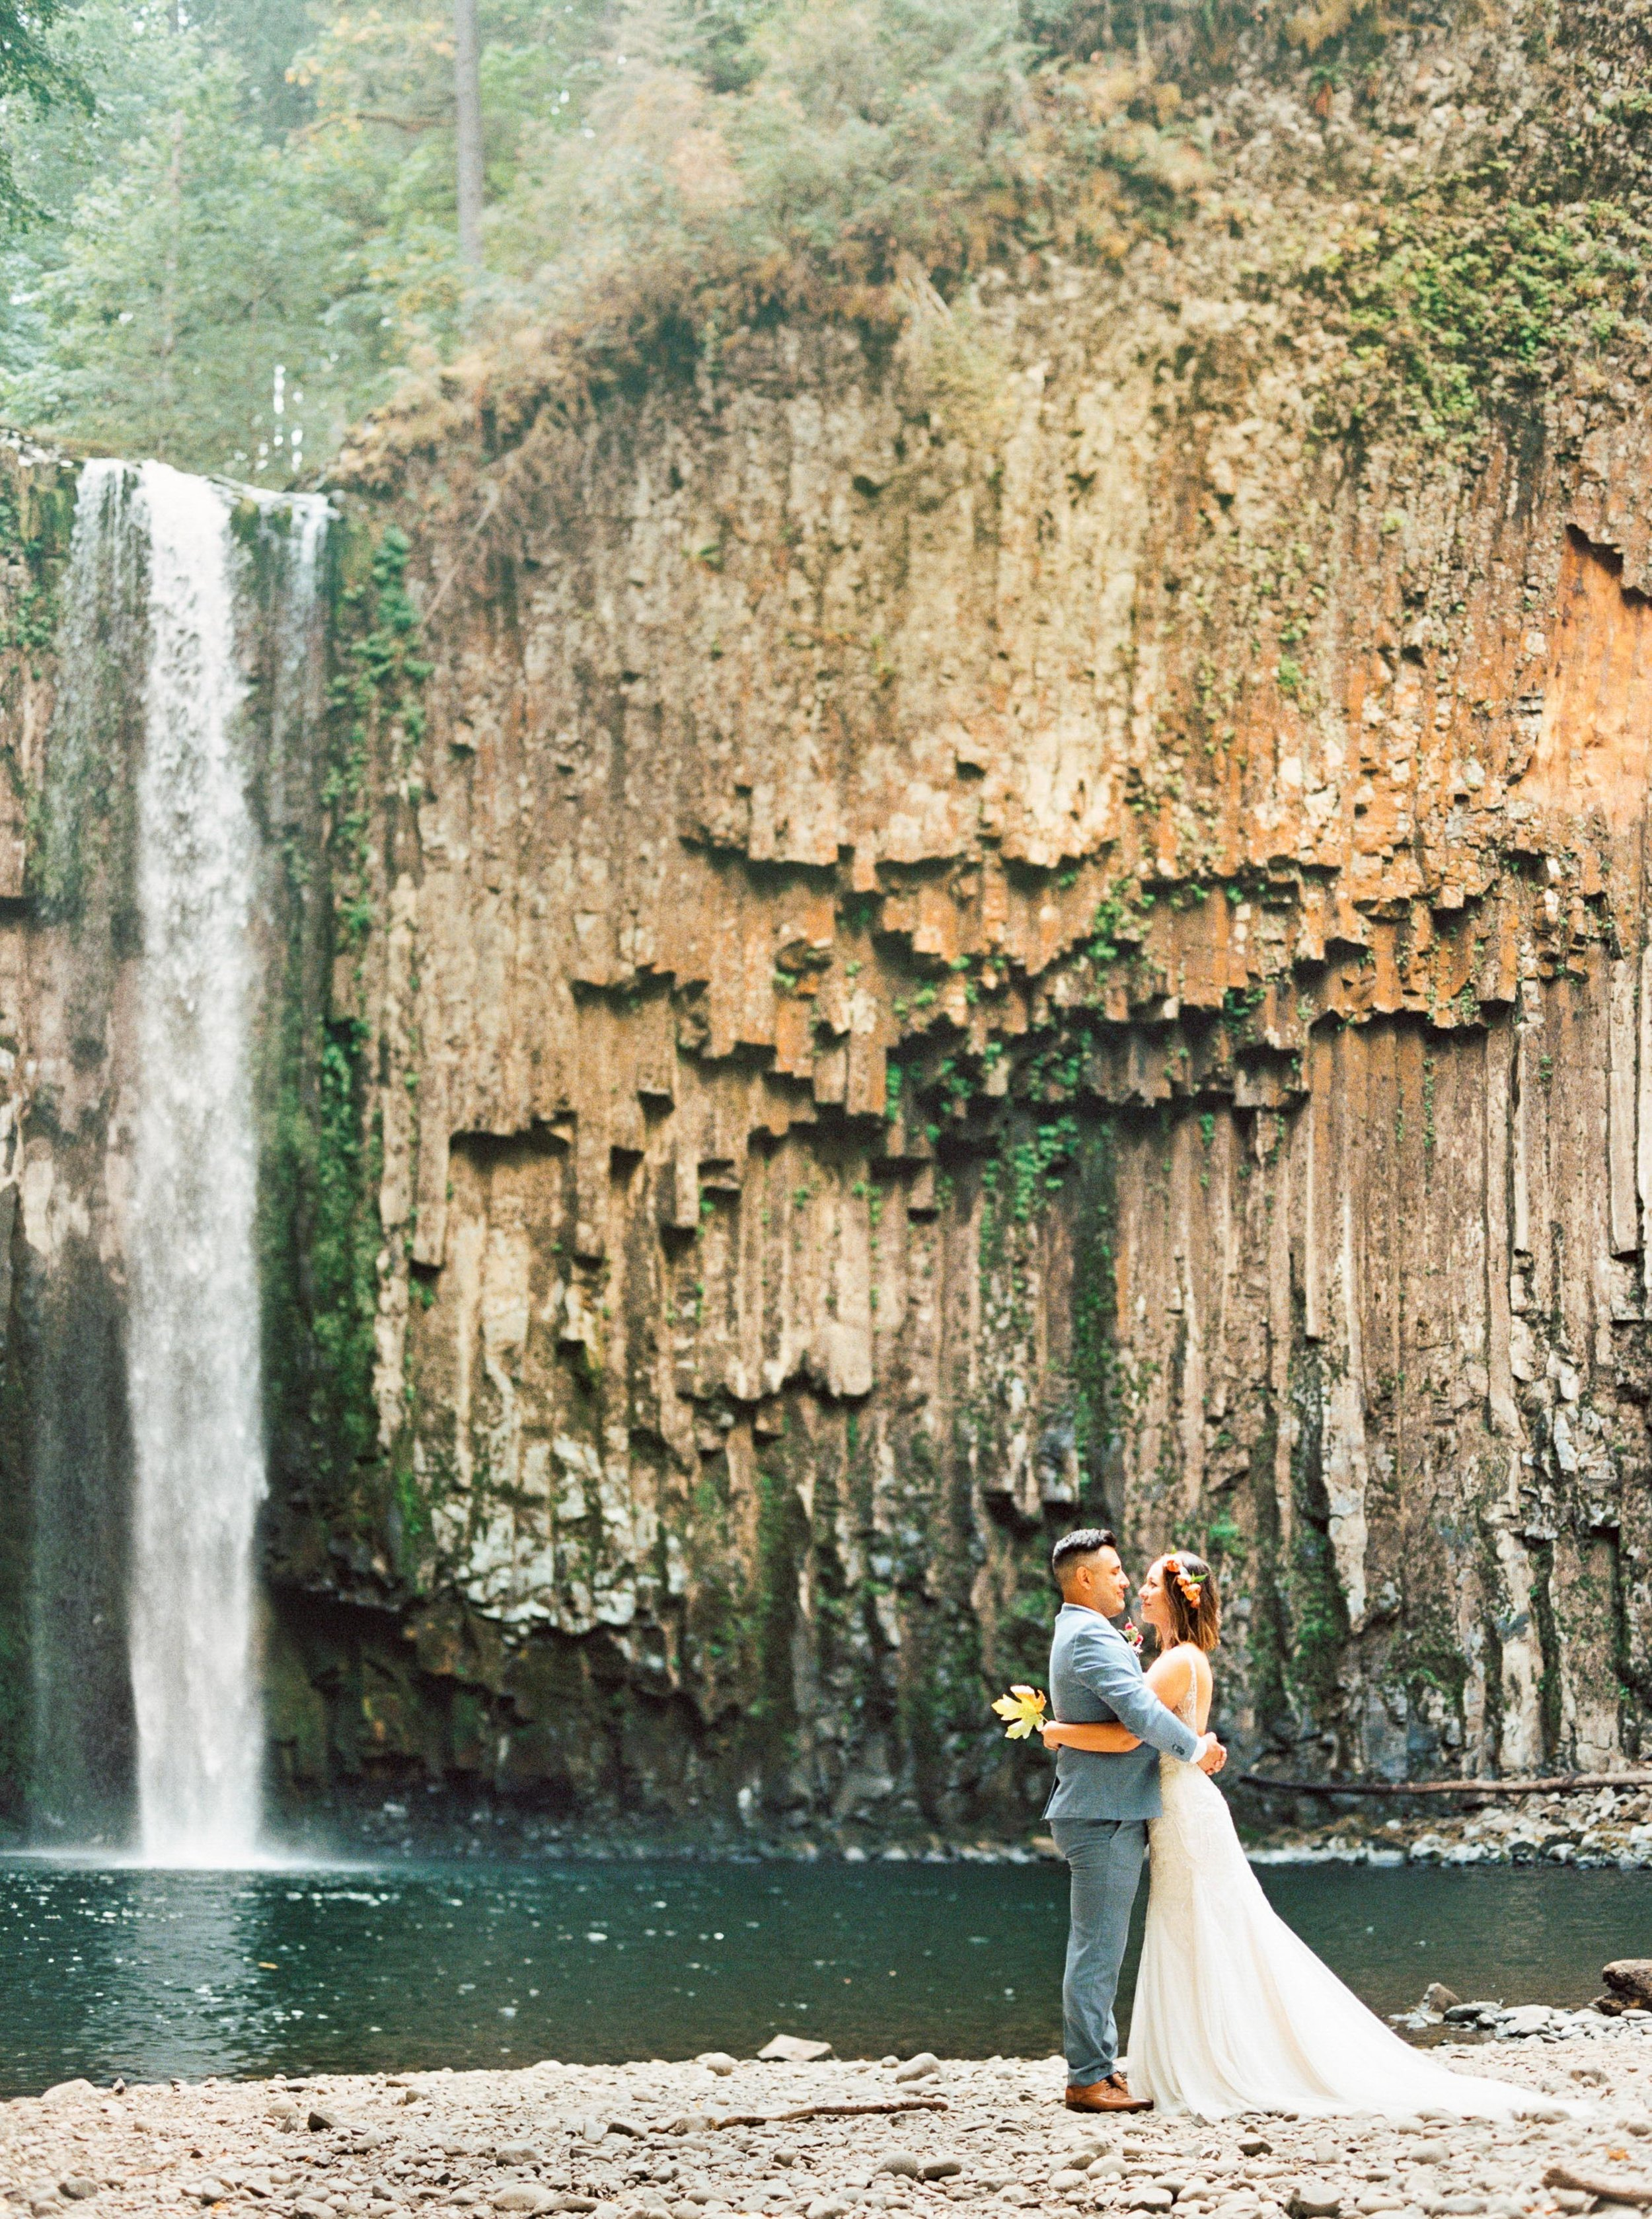 abiqua_falls_elopement_wedding_oregon_photographer_videographer_069.jpg